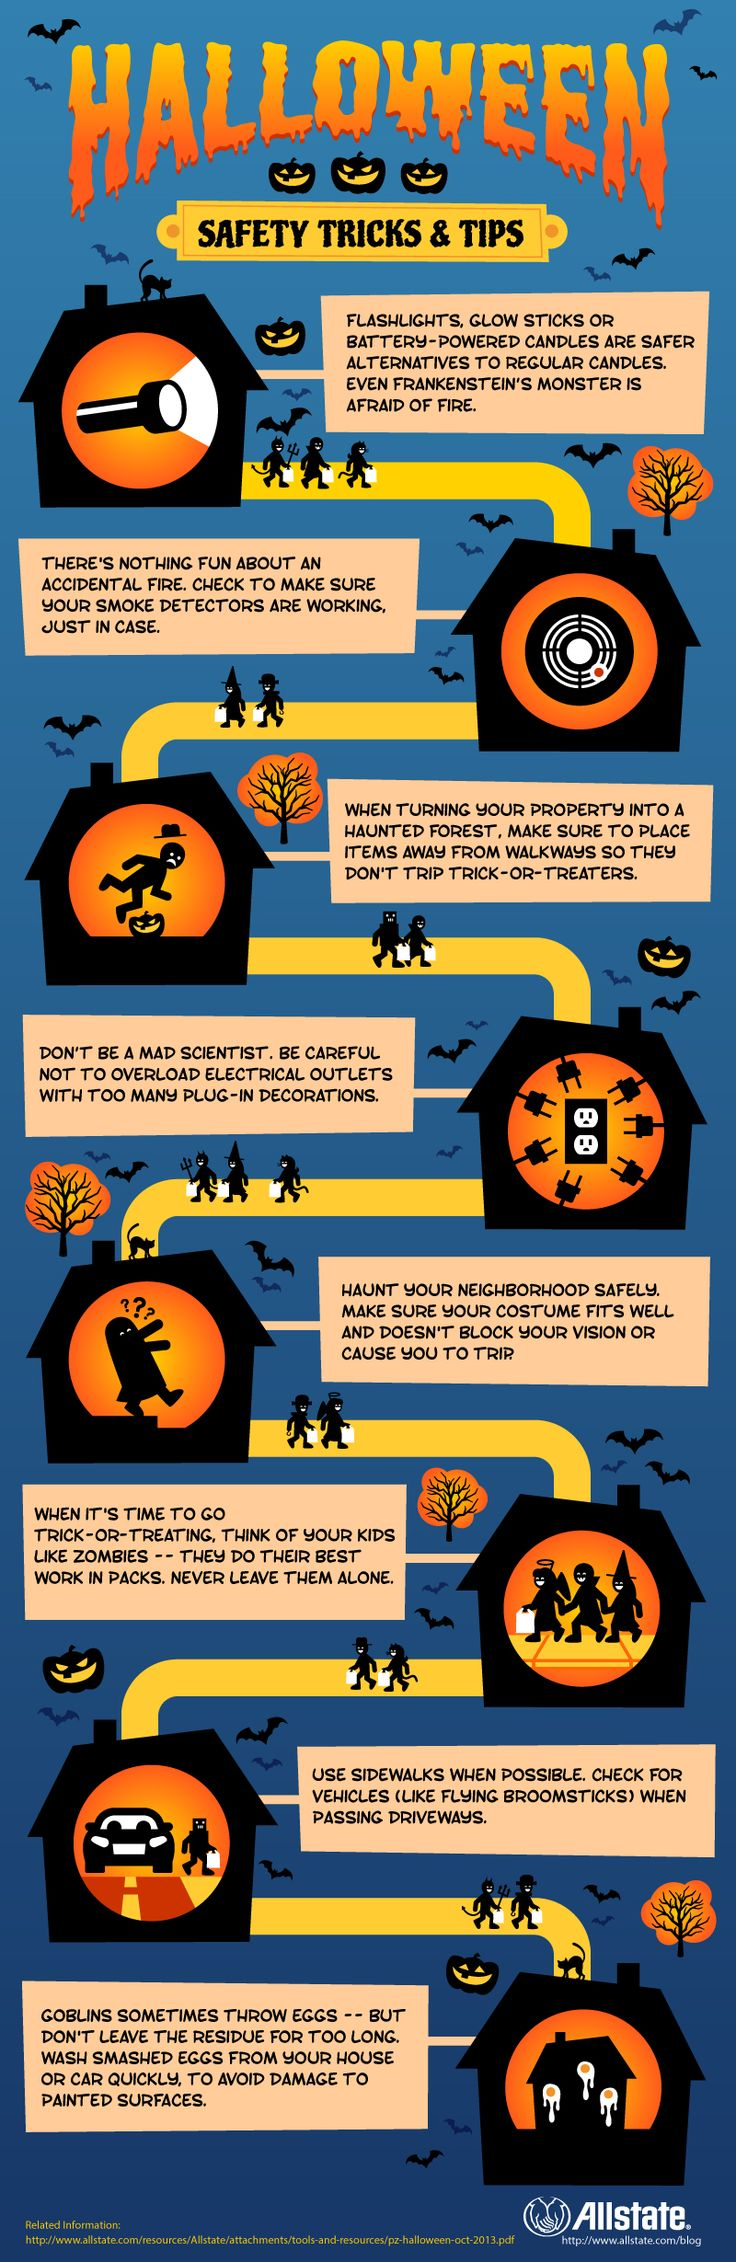 Check out this @Allstate infographic for some great tips and tricks on Halloween safety!